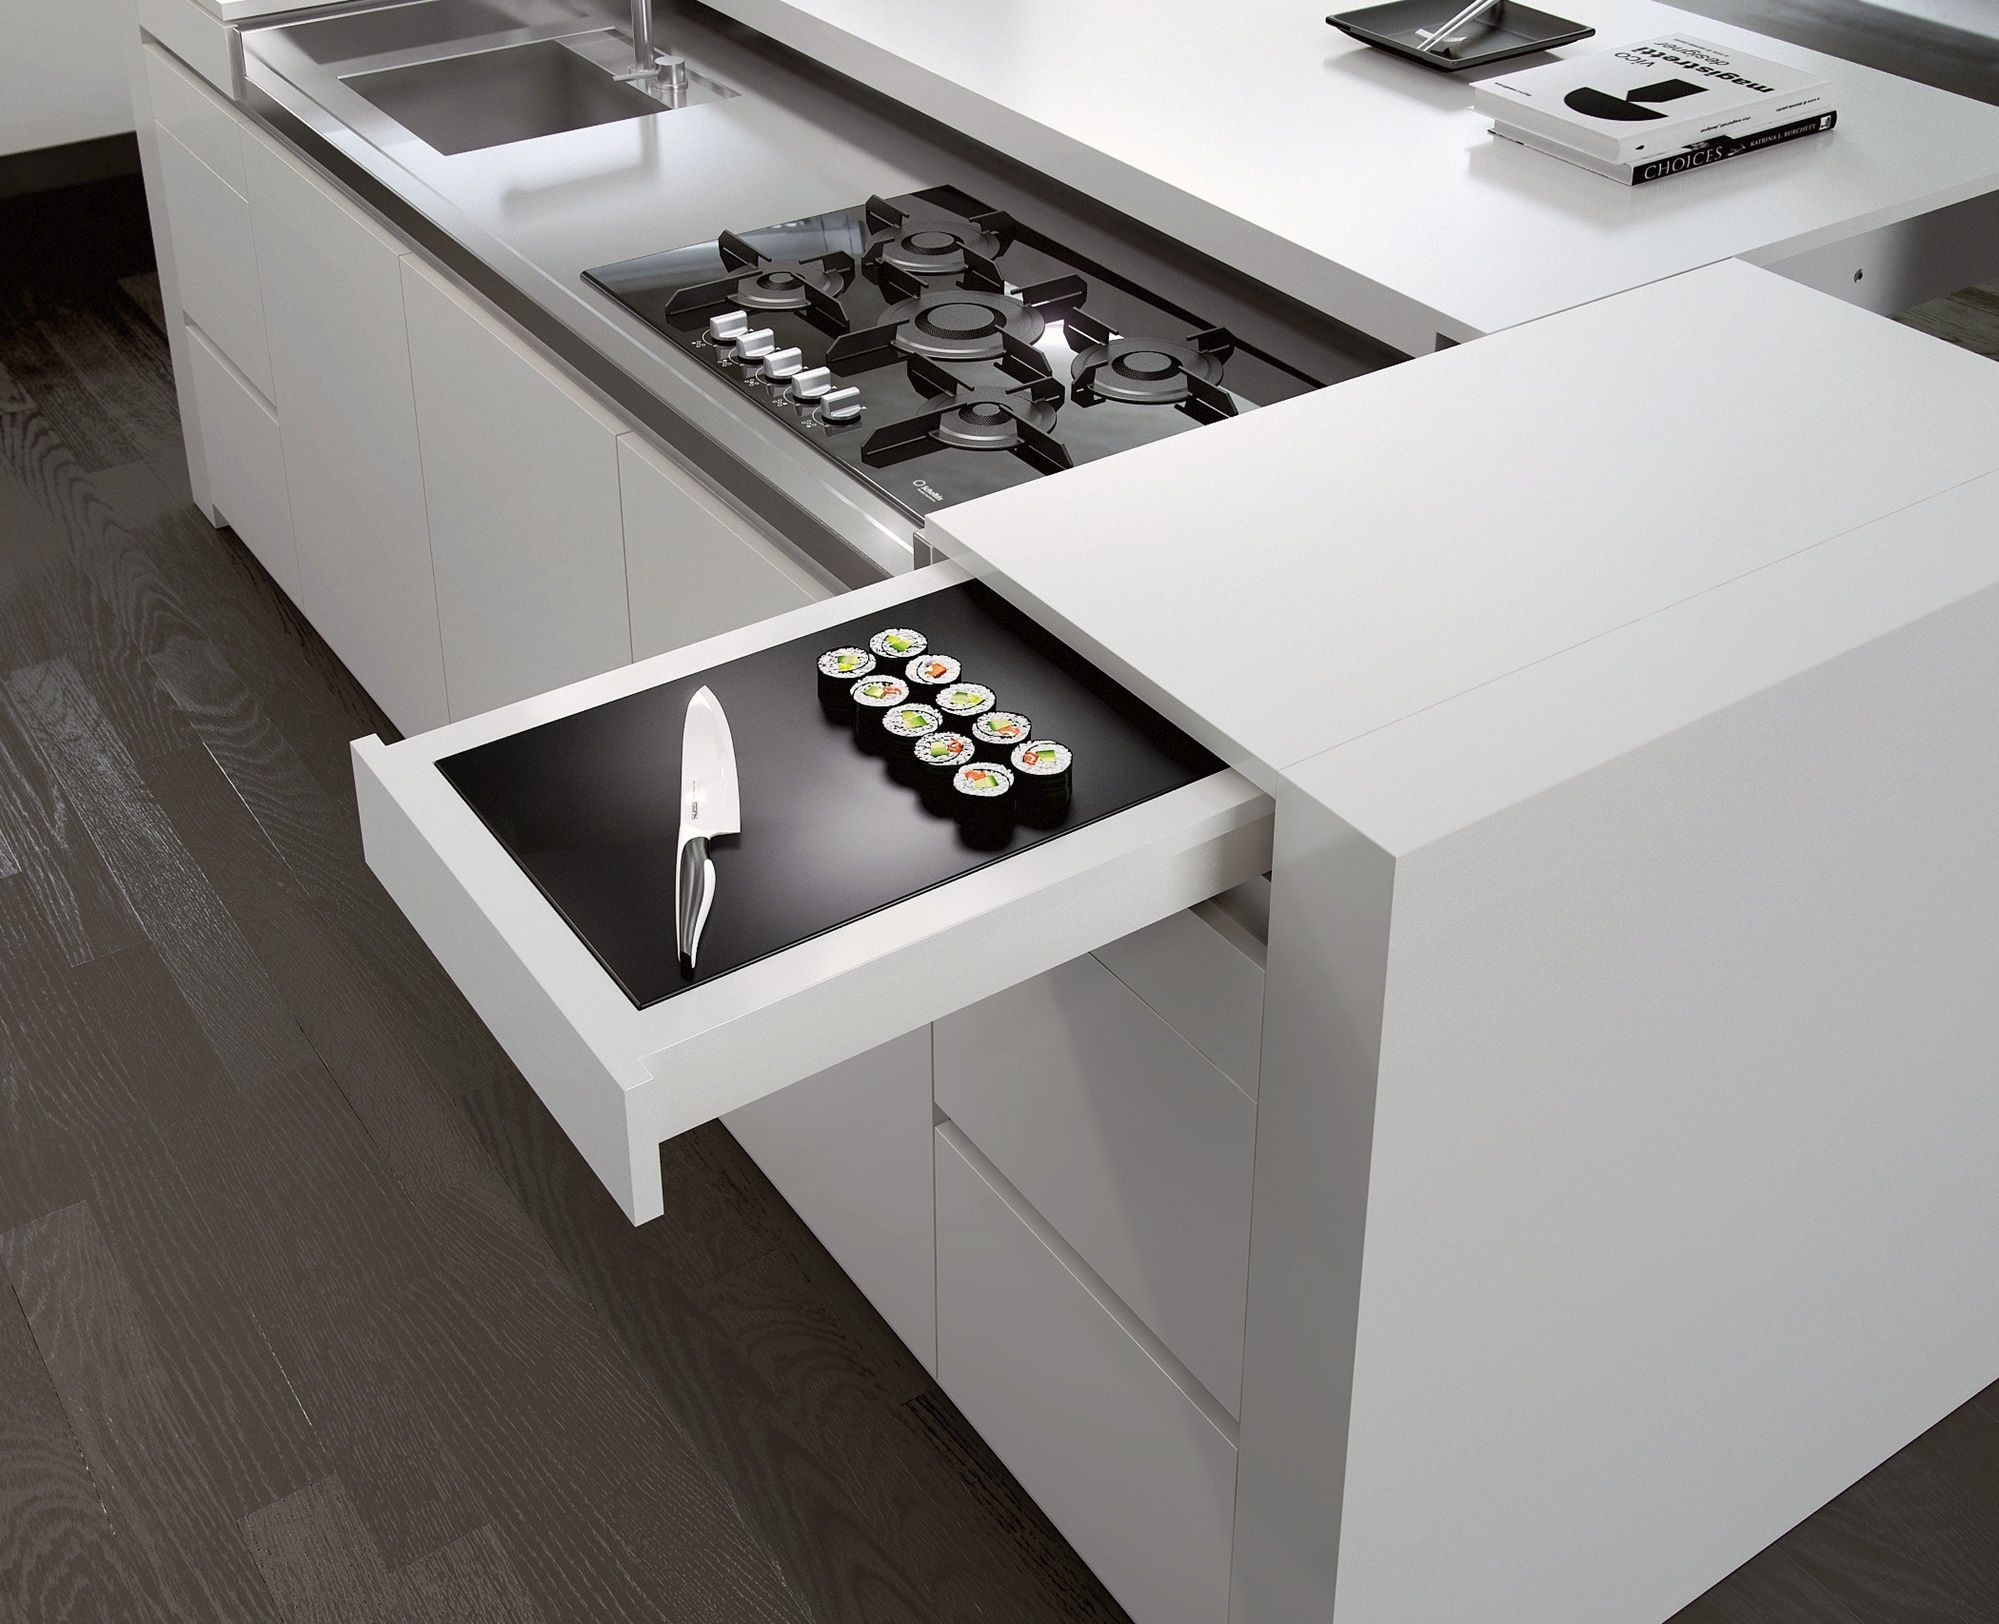 compact and chic kaboodle kitchen in 2019 kitchen kitchen interior kitchen remodel on kaboodle kitchen layout id=62836